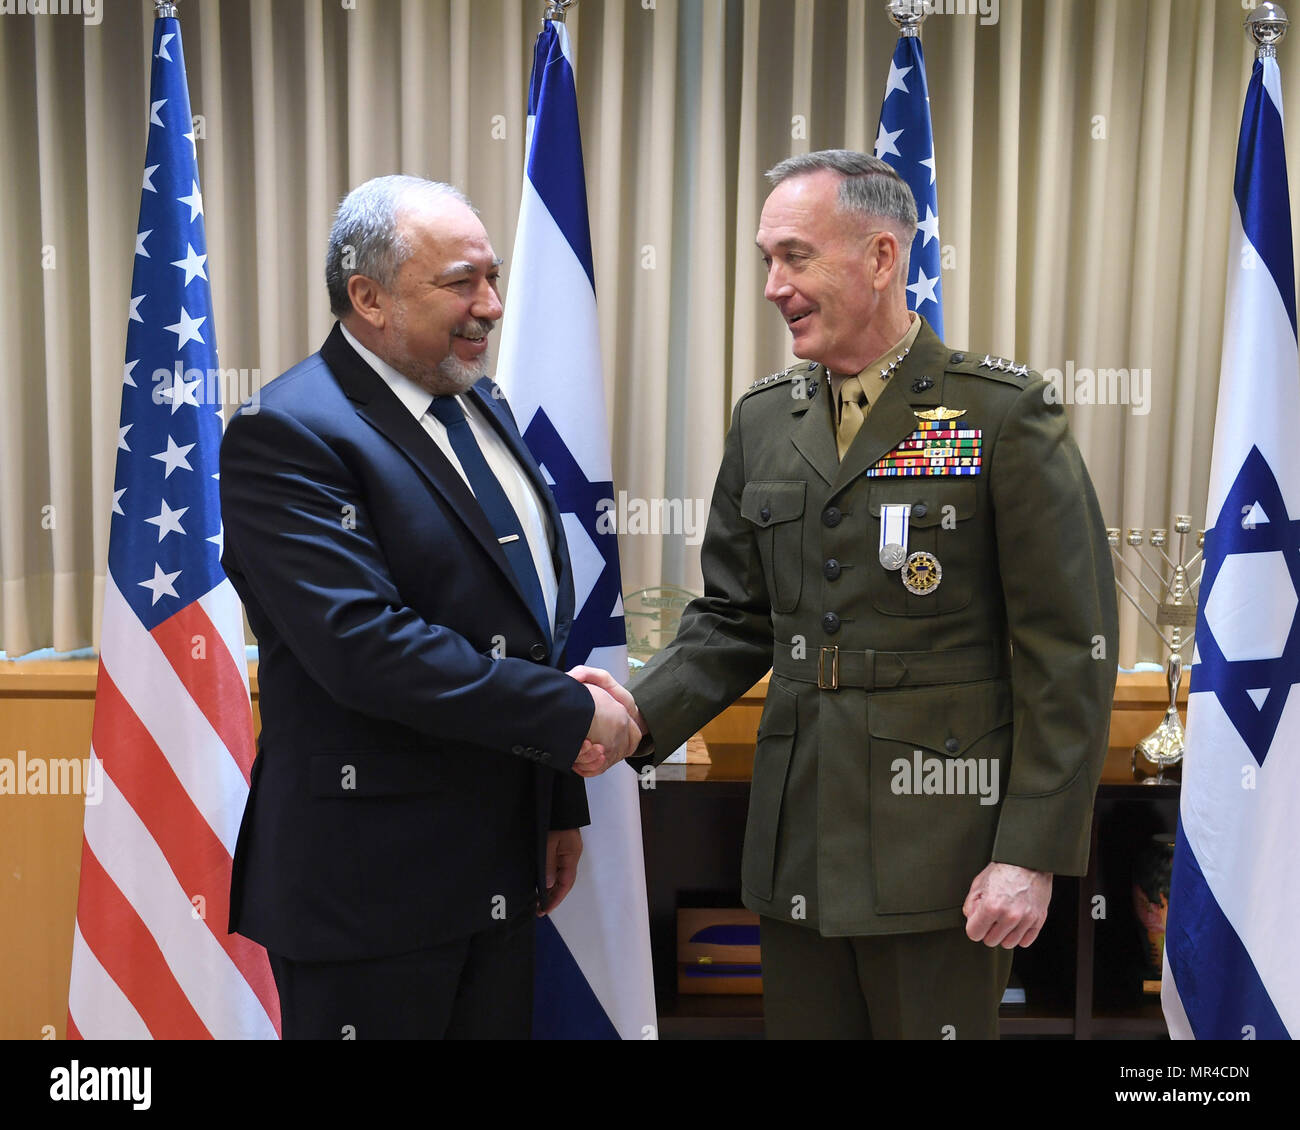 Chairman of the Joint Chiefs of Staff, General Joseph Dunford meets Israeli Minister of Defense Avigdor Lieberman, Tel Aviv, May 9, 2017. - Stock Image